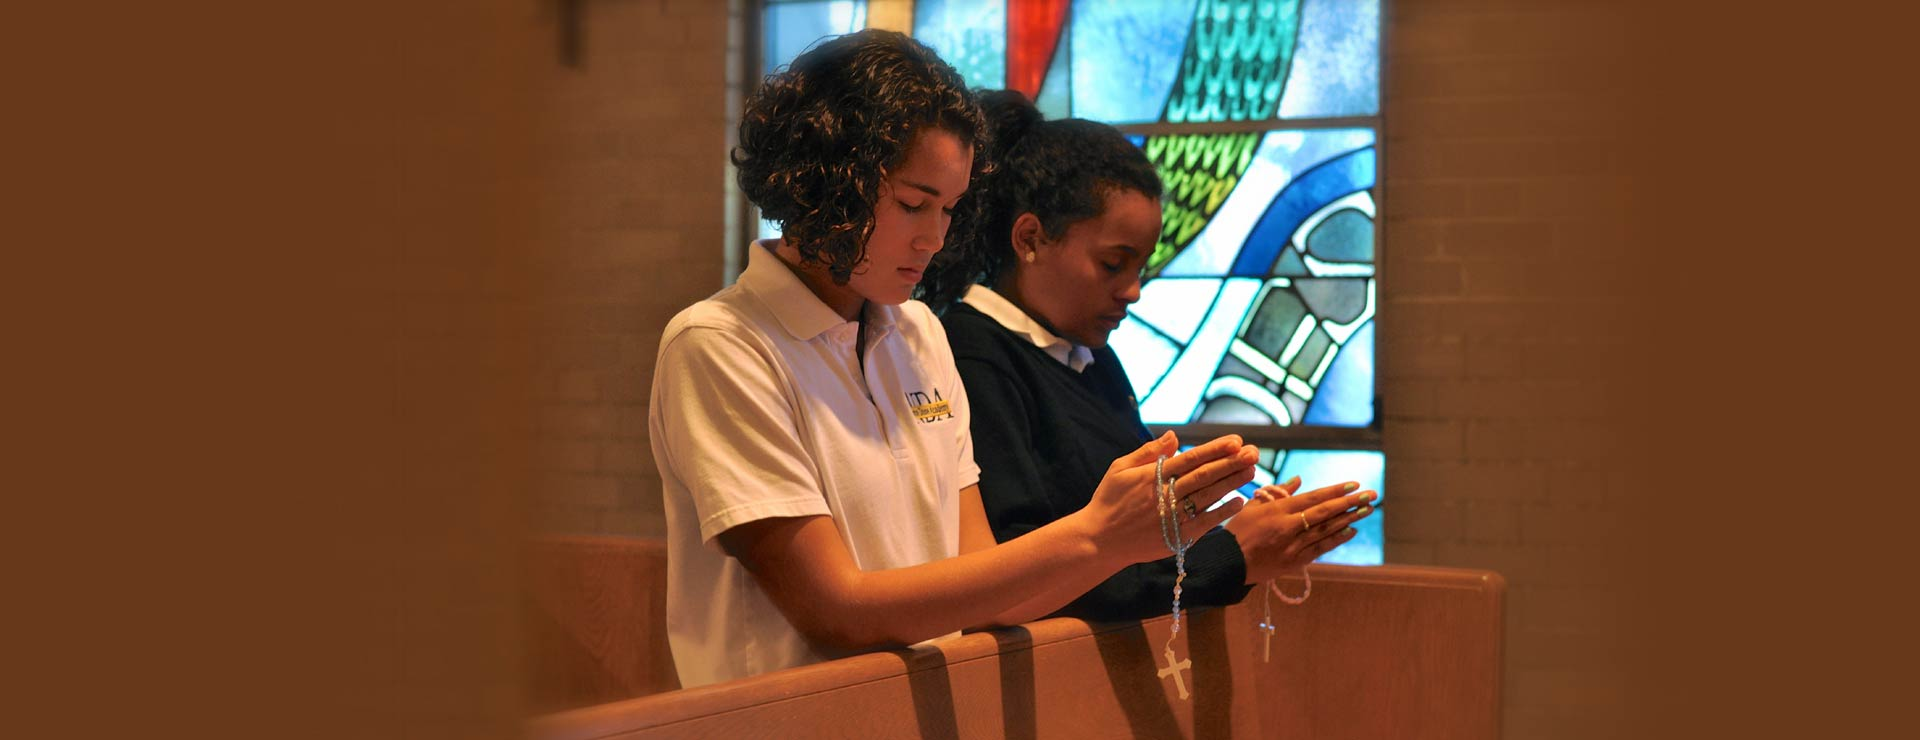 Two students praying the rosary in the chapel at the Notre Dame Academy catholic all girls school students praying in the campus chapel in Northern Kentucky.